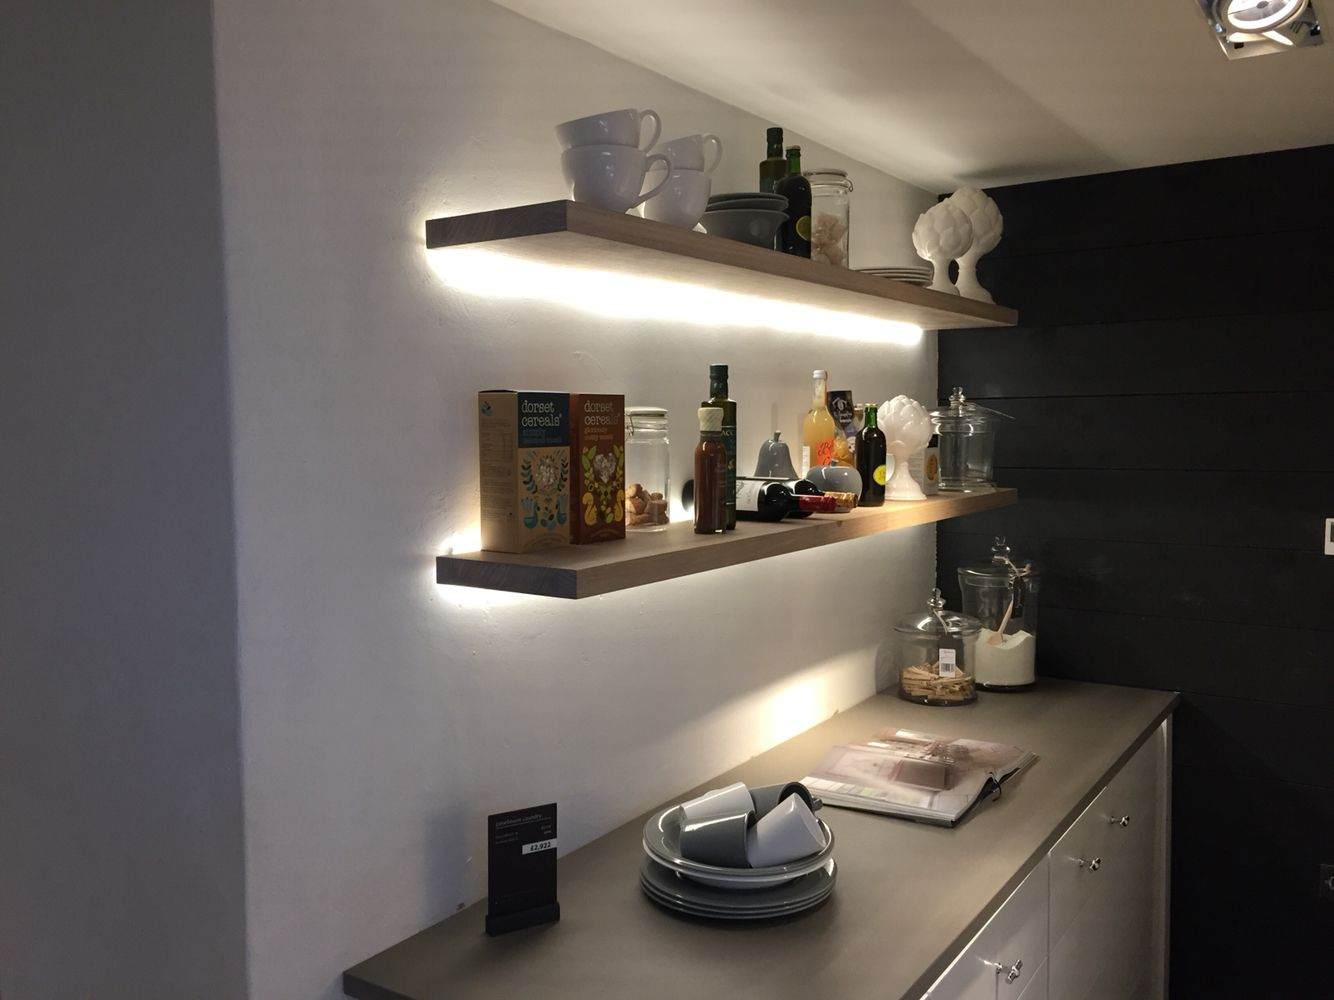 Floating Shelves, With Strip LED Lighting On Exposed Brick